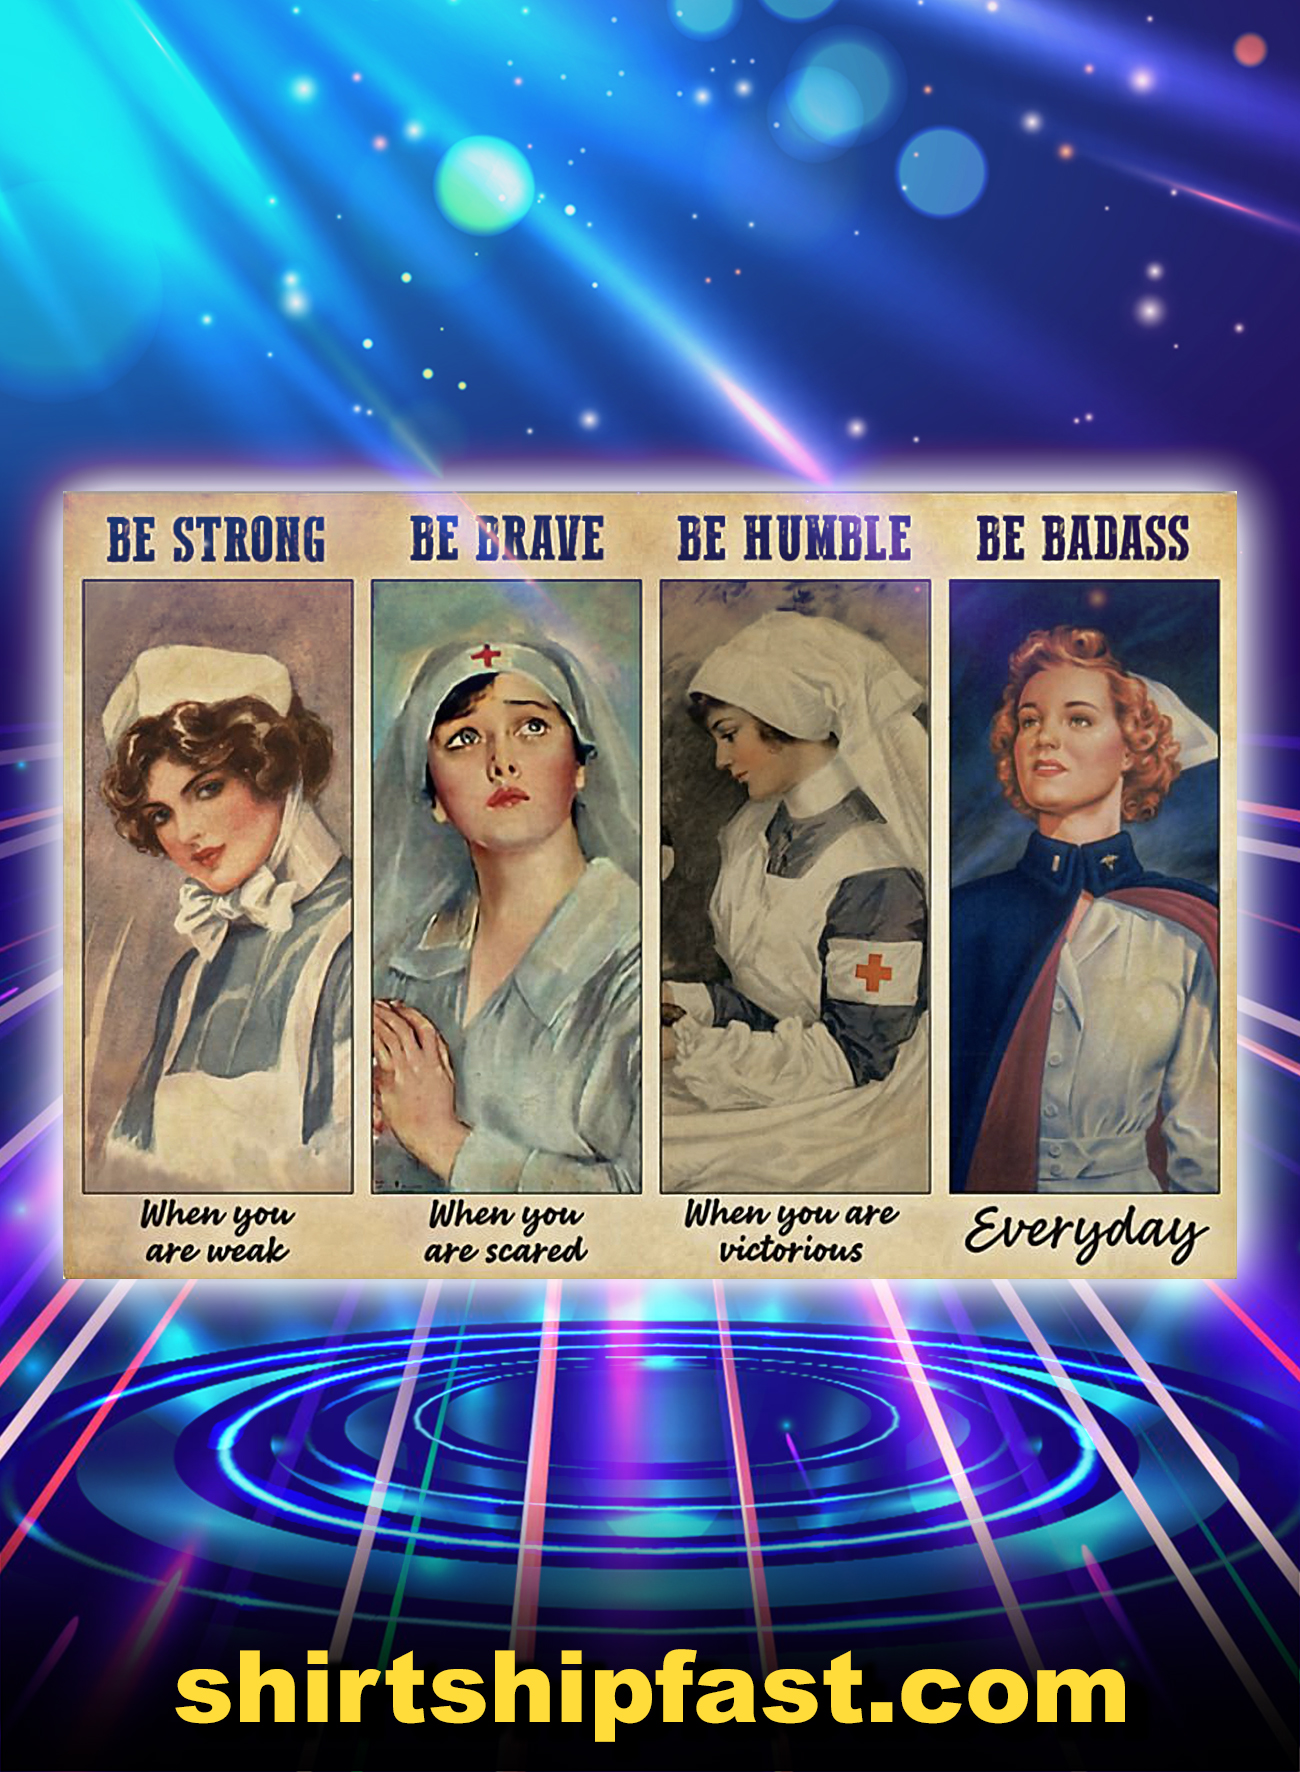 Female nurse be strong be brave be humble be badass poster - A4